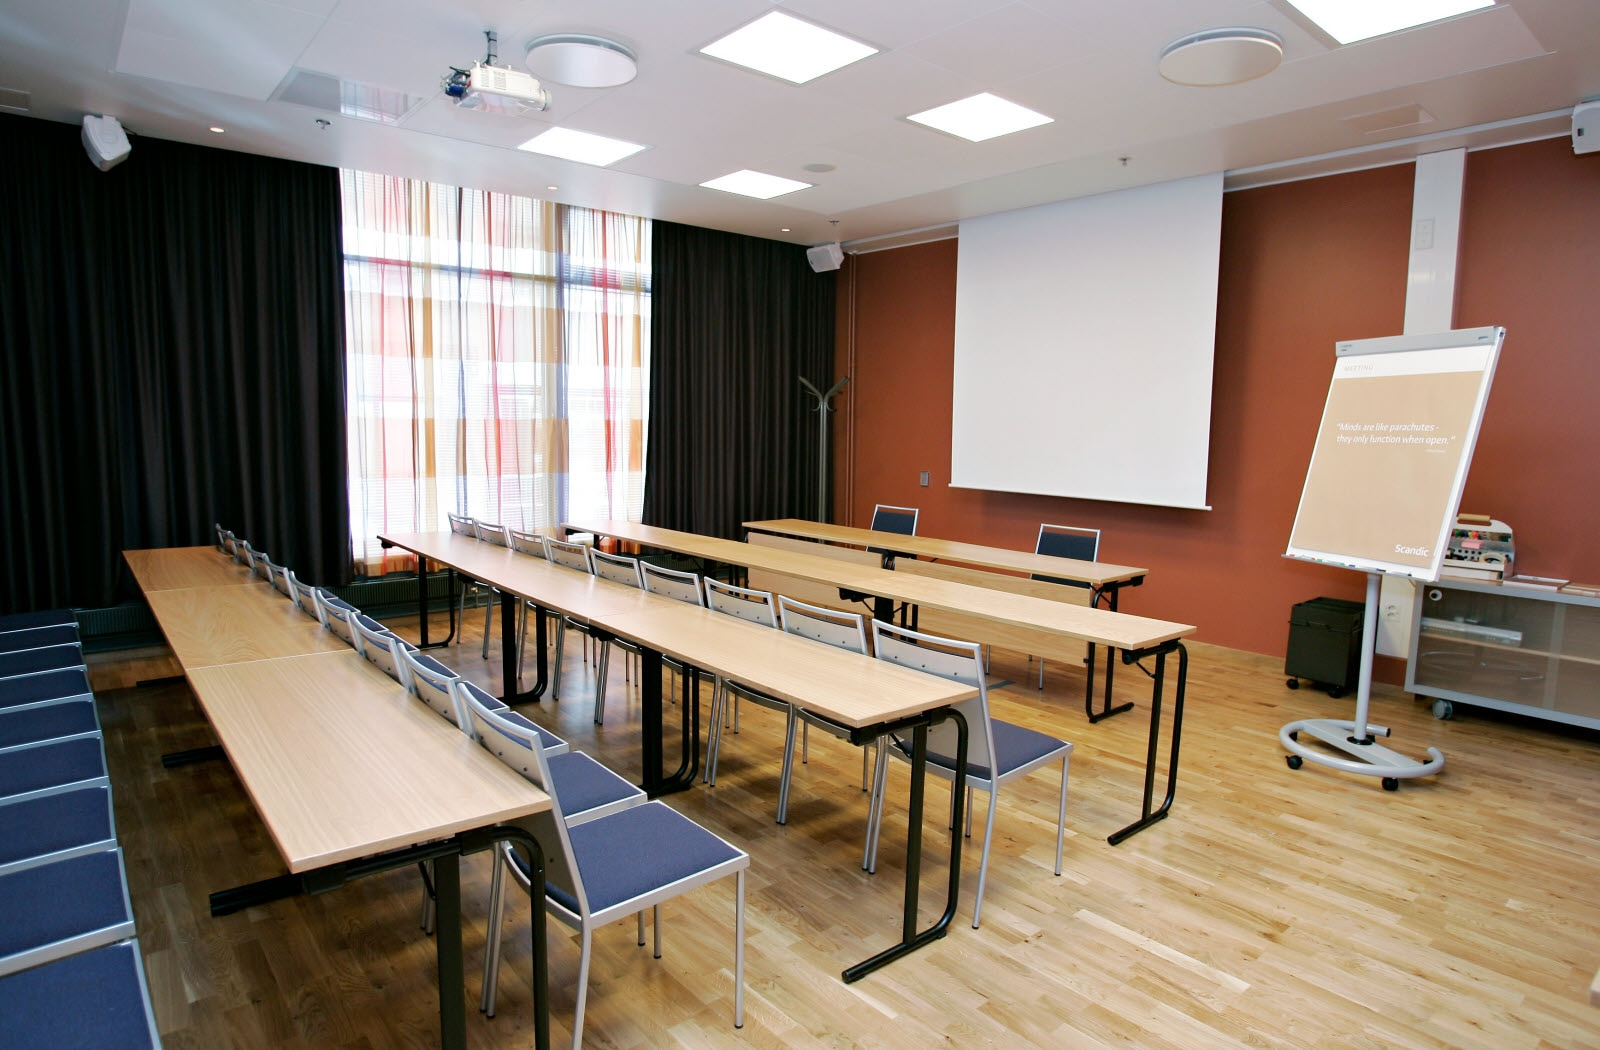 Scandic Tampere City, meeting, conference room